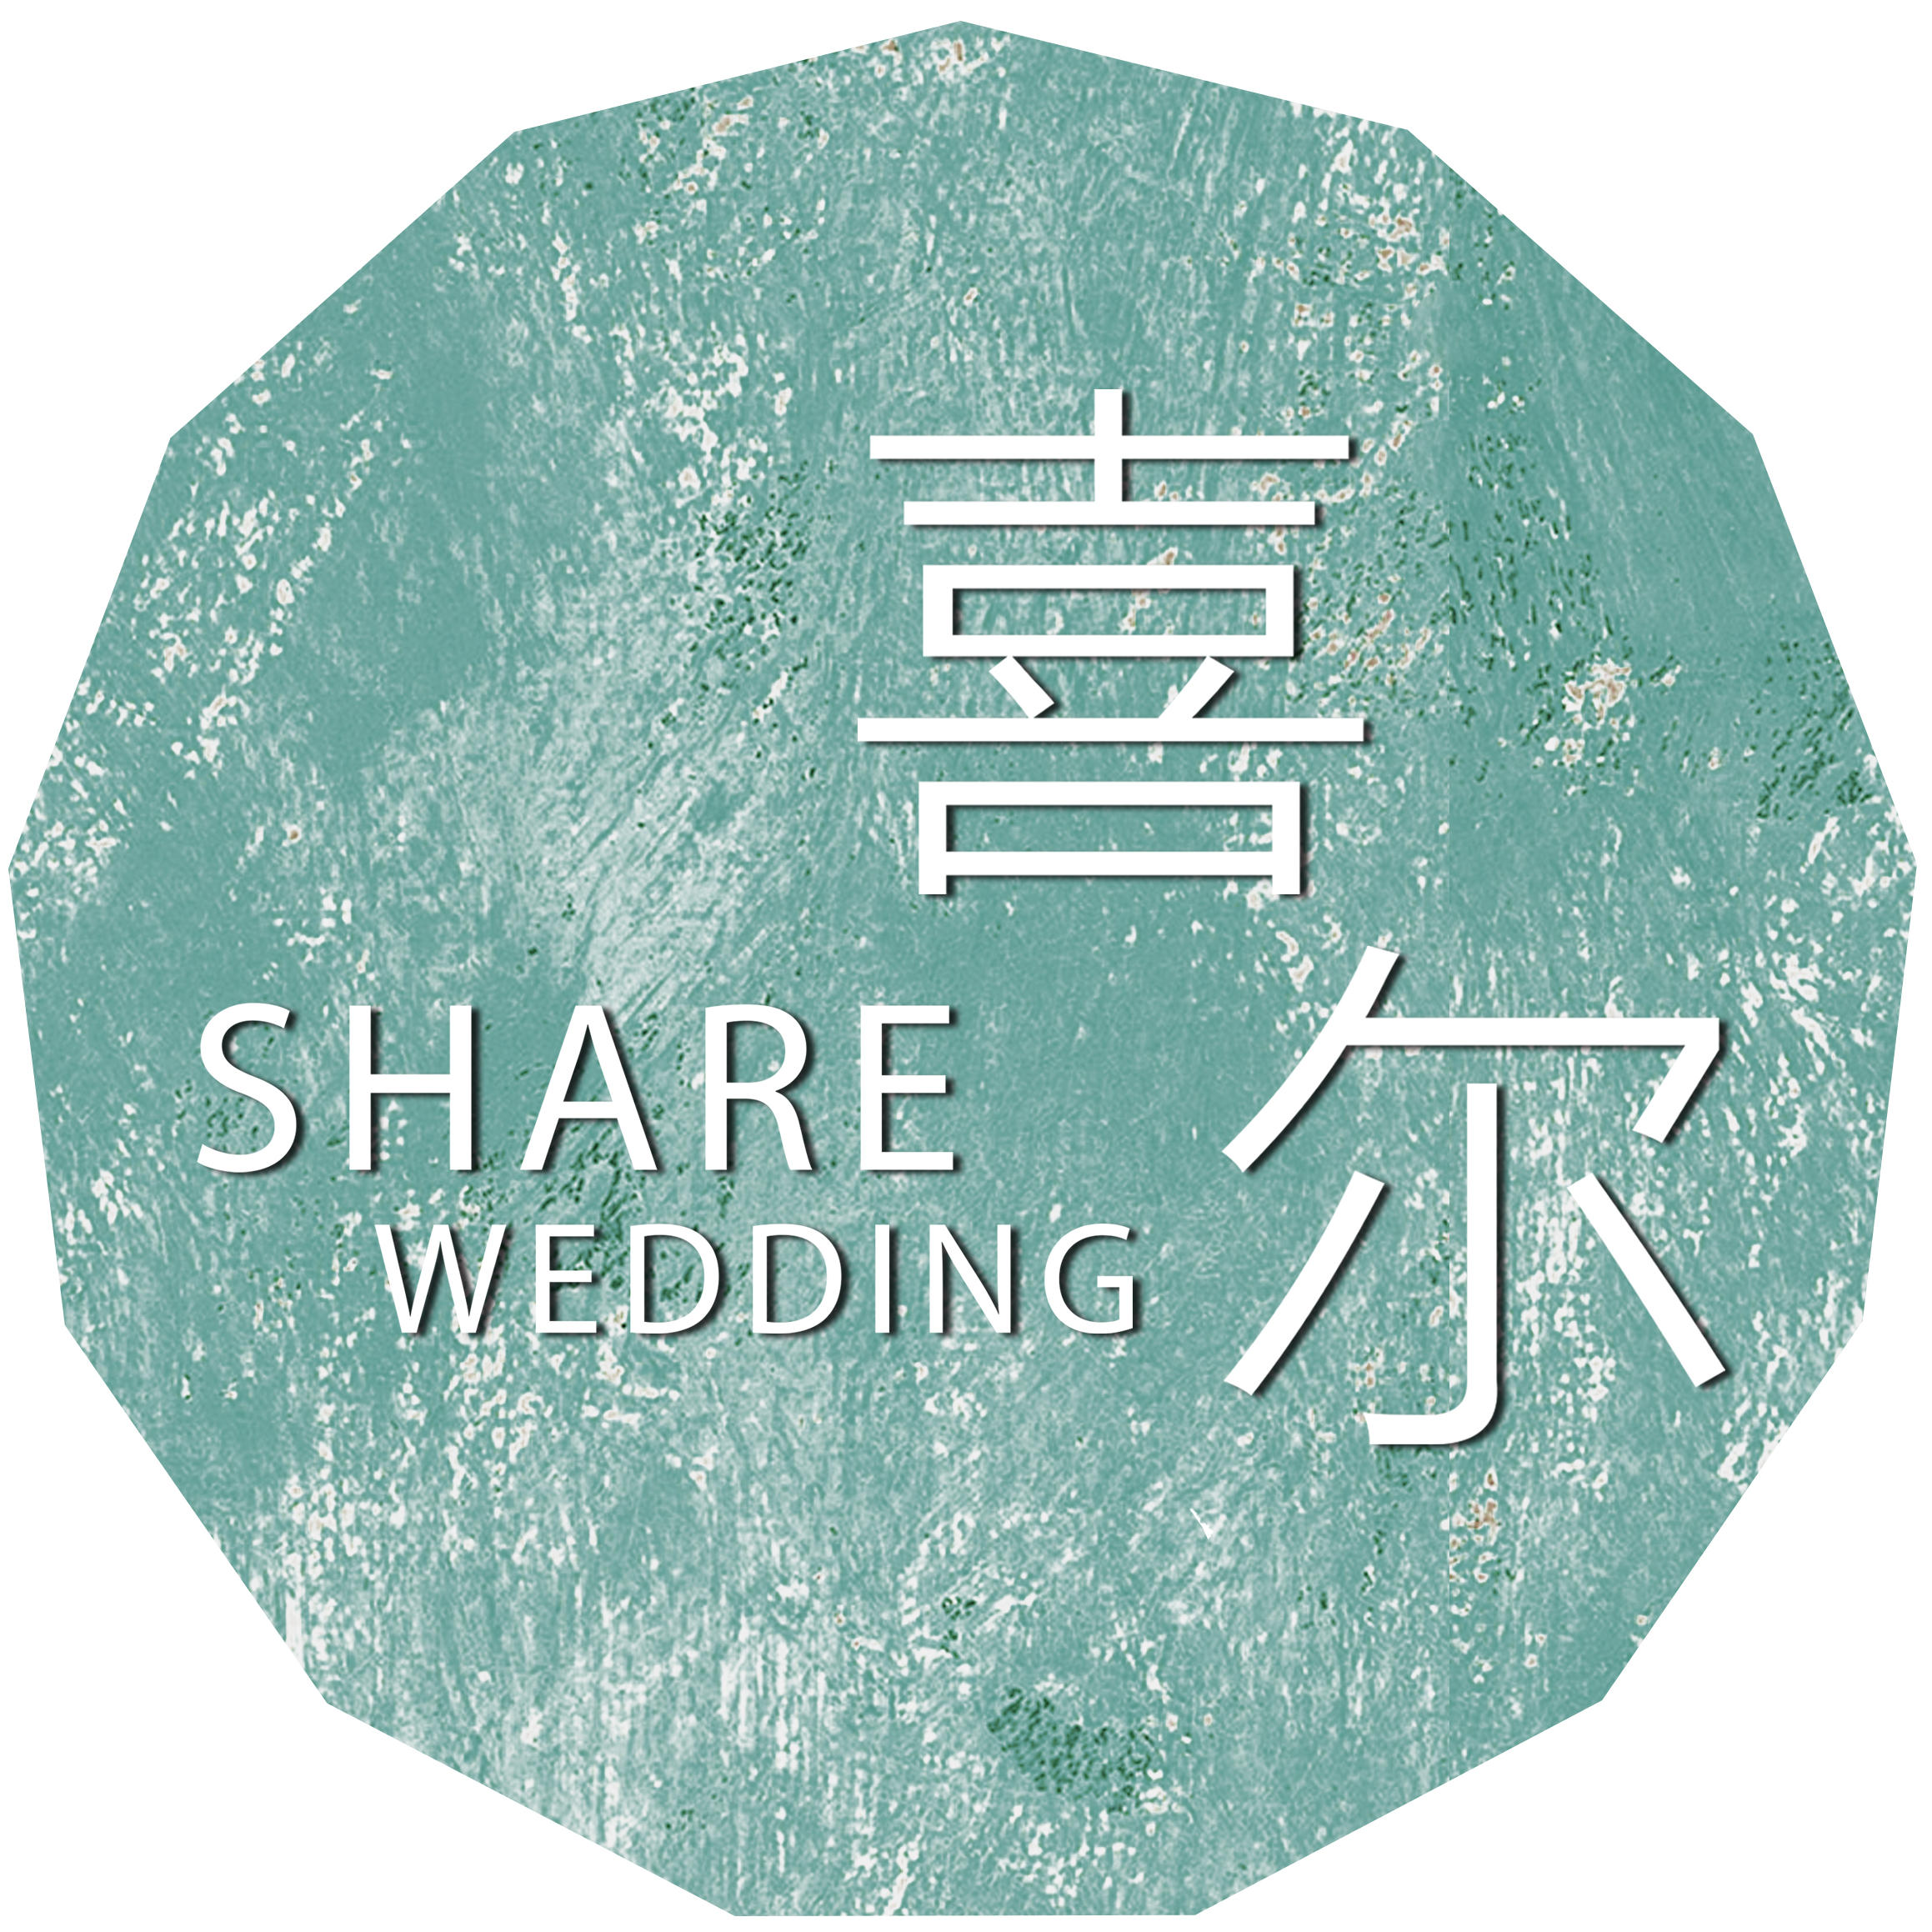 ShareWedding喜尔婚礼